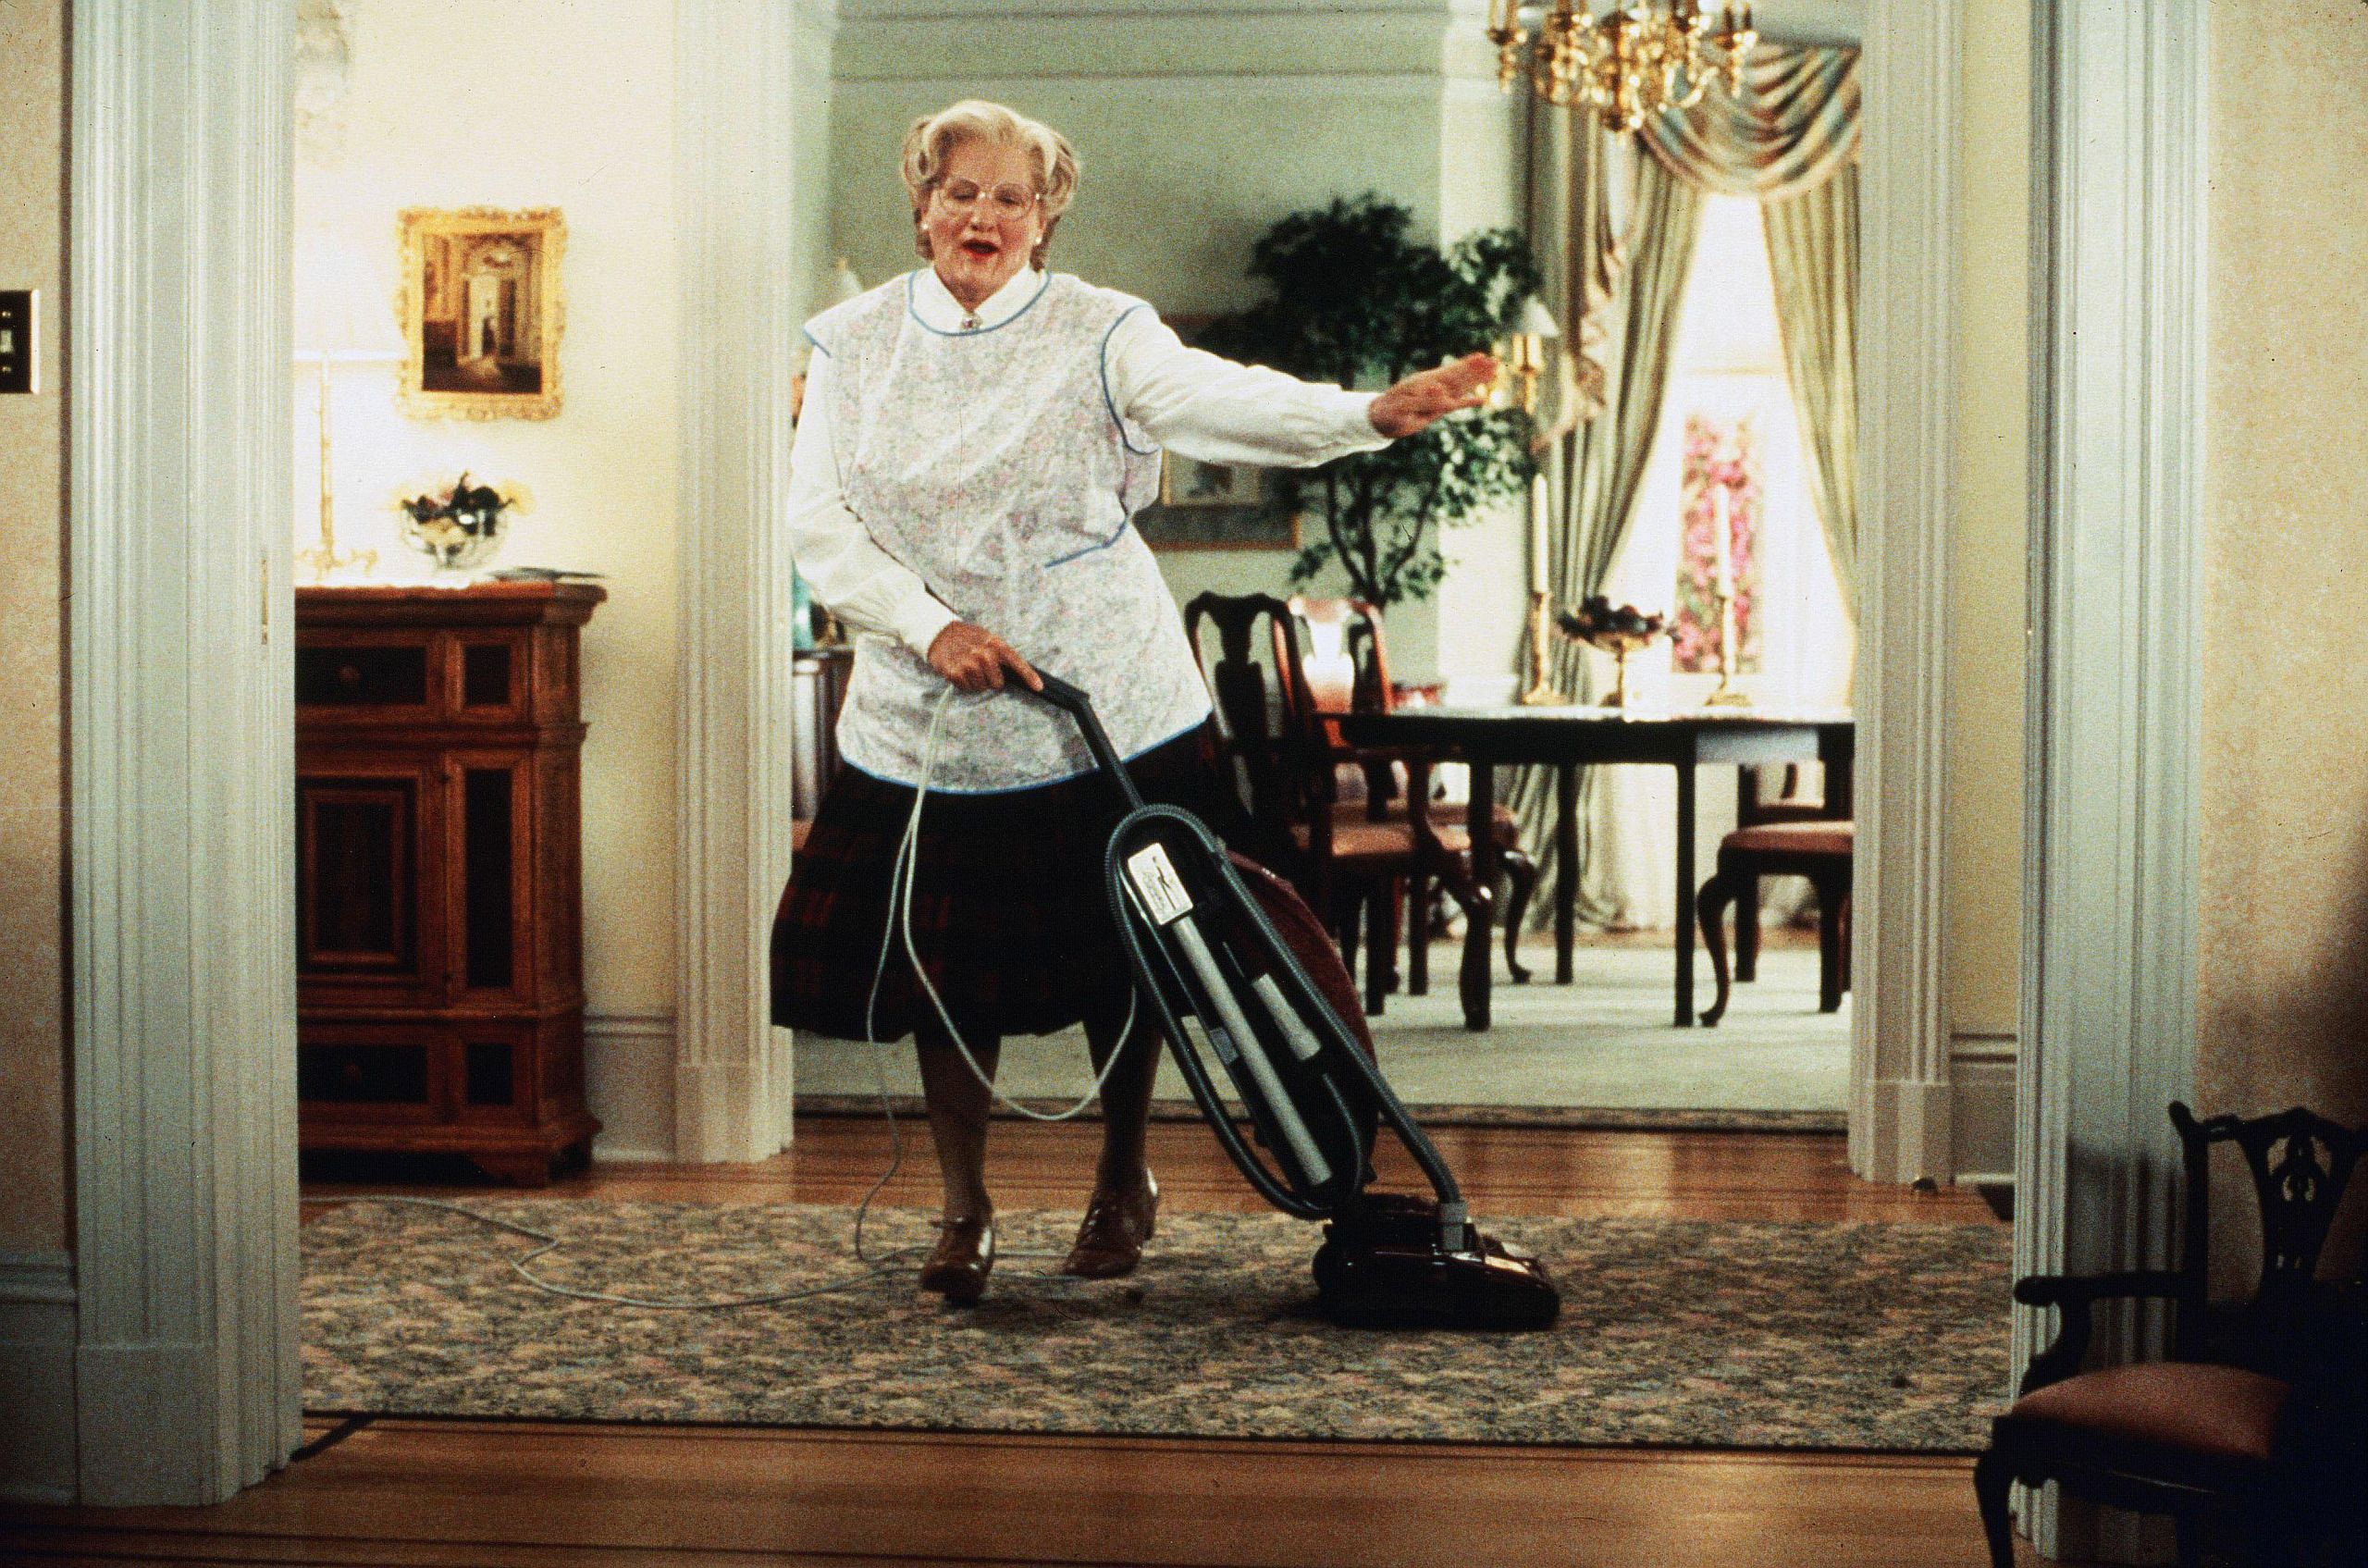 Mrs Doubtfire screening in aid of ADAPT